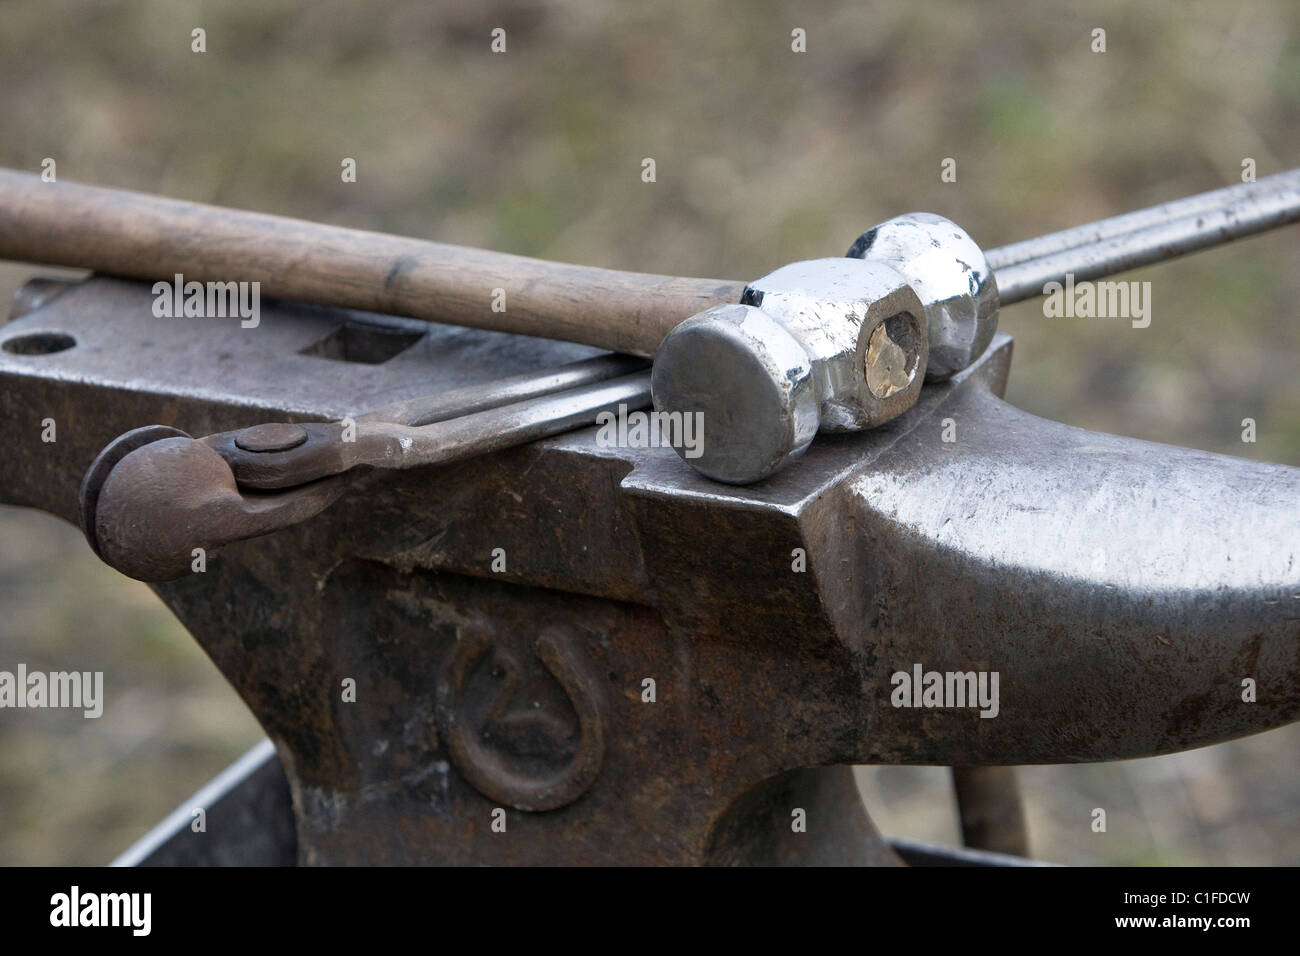 Mobile farriers anvil, hammer and tongs. - Stock Image